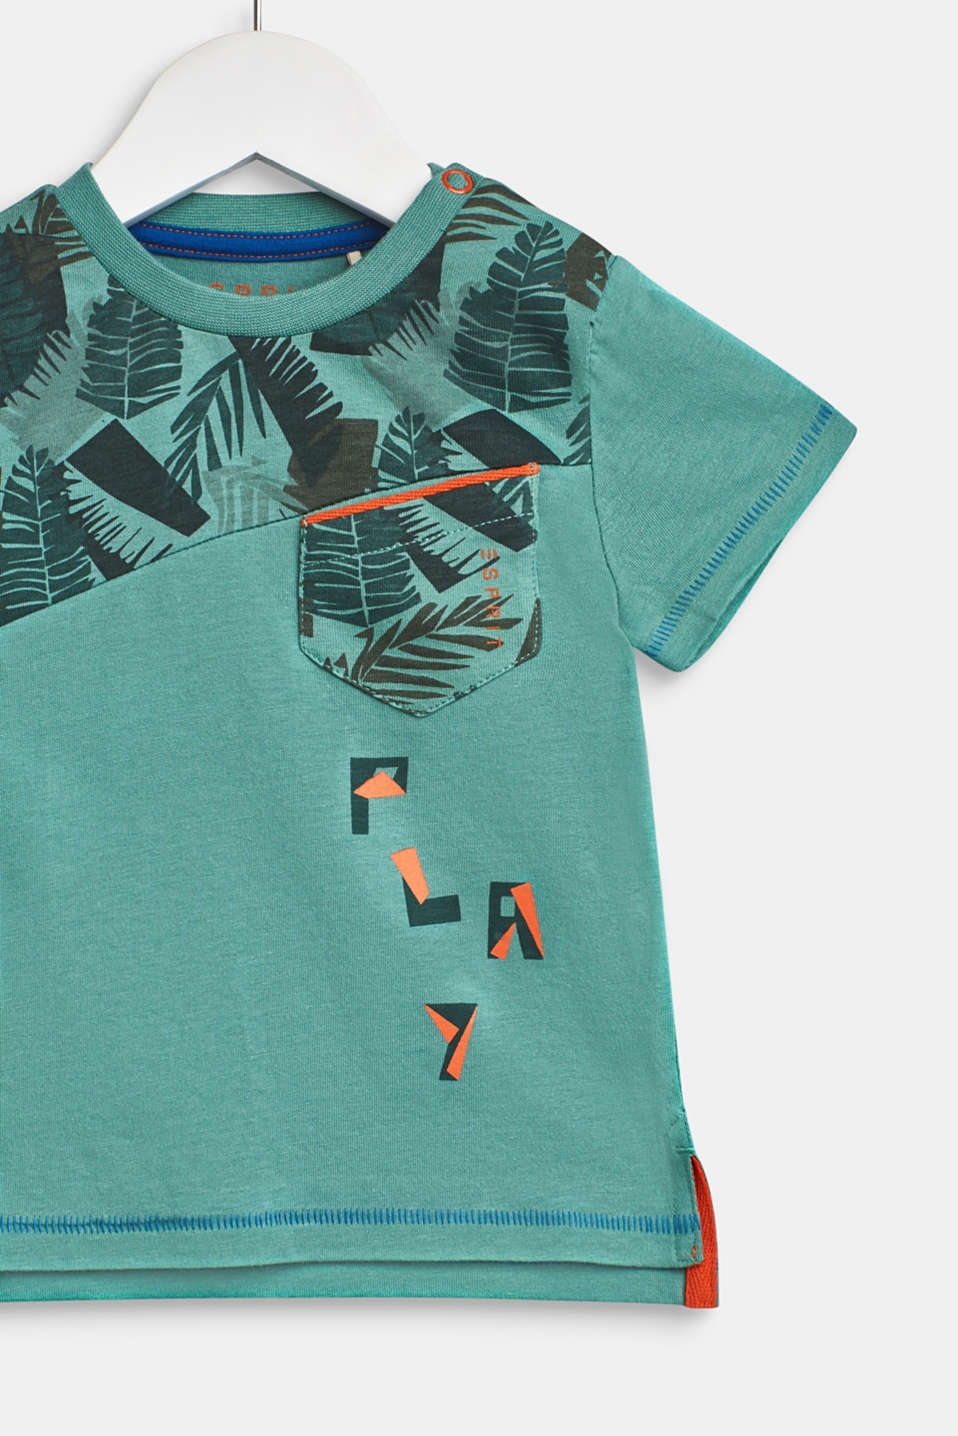 T-shirt with tropical prints, 100% cotton, LCSOFT GREEN, detail image number 2